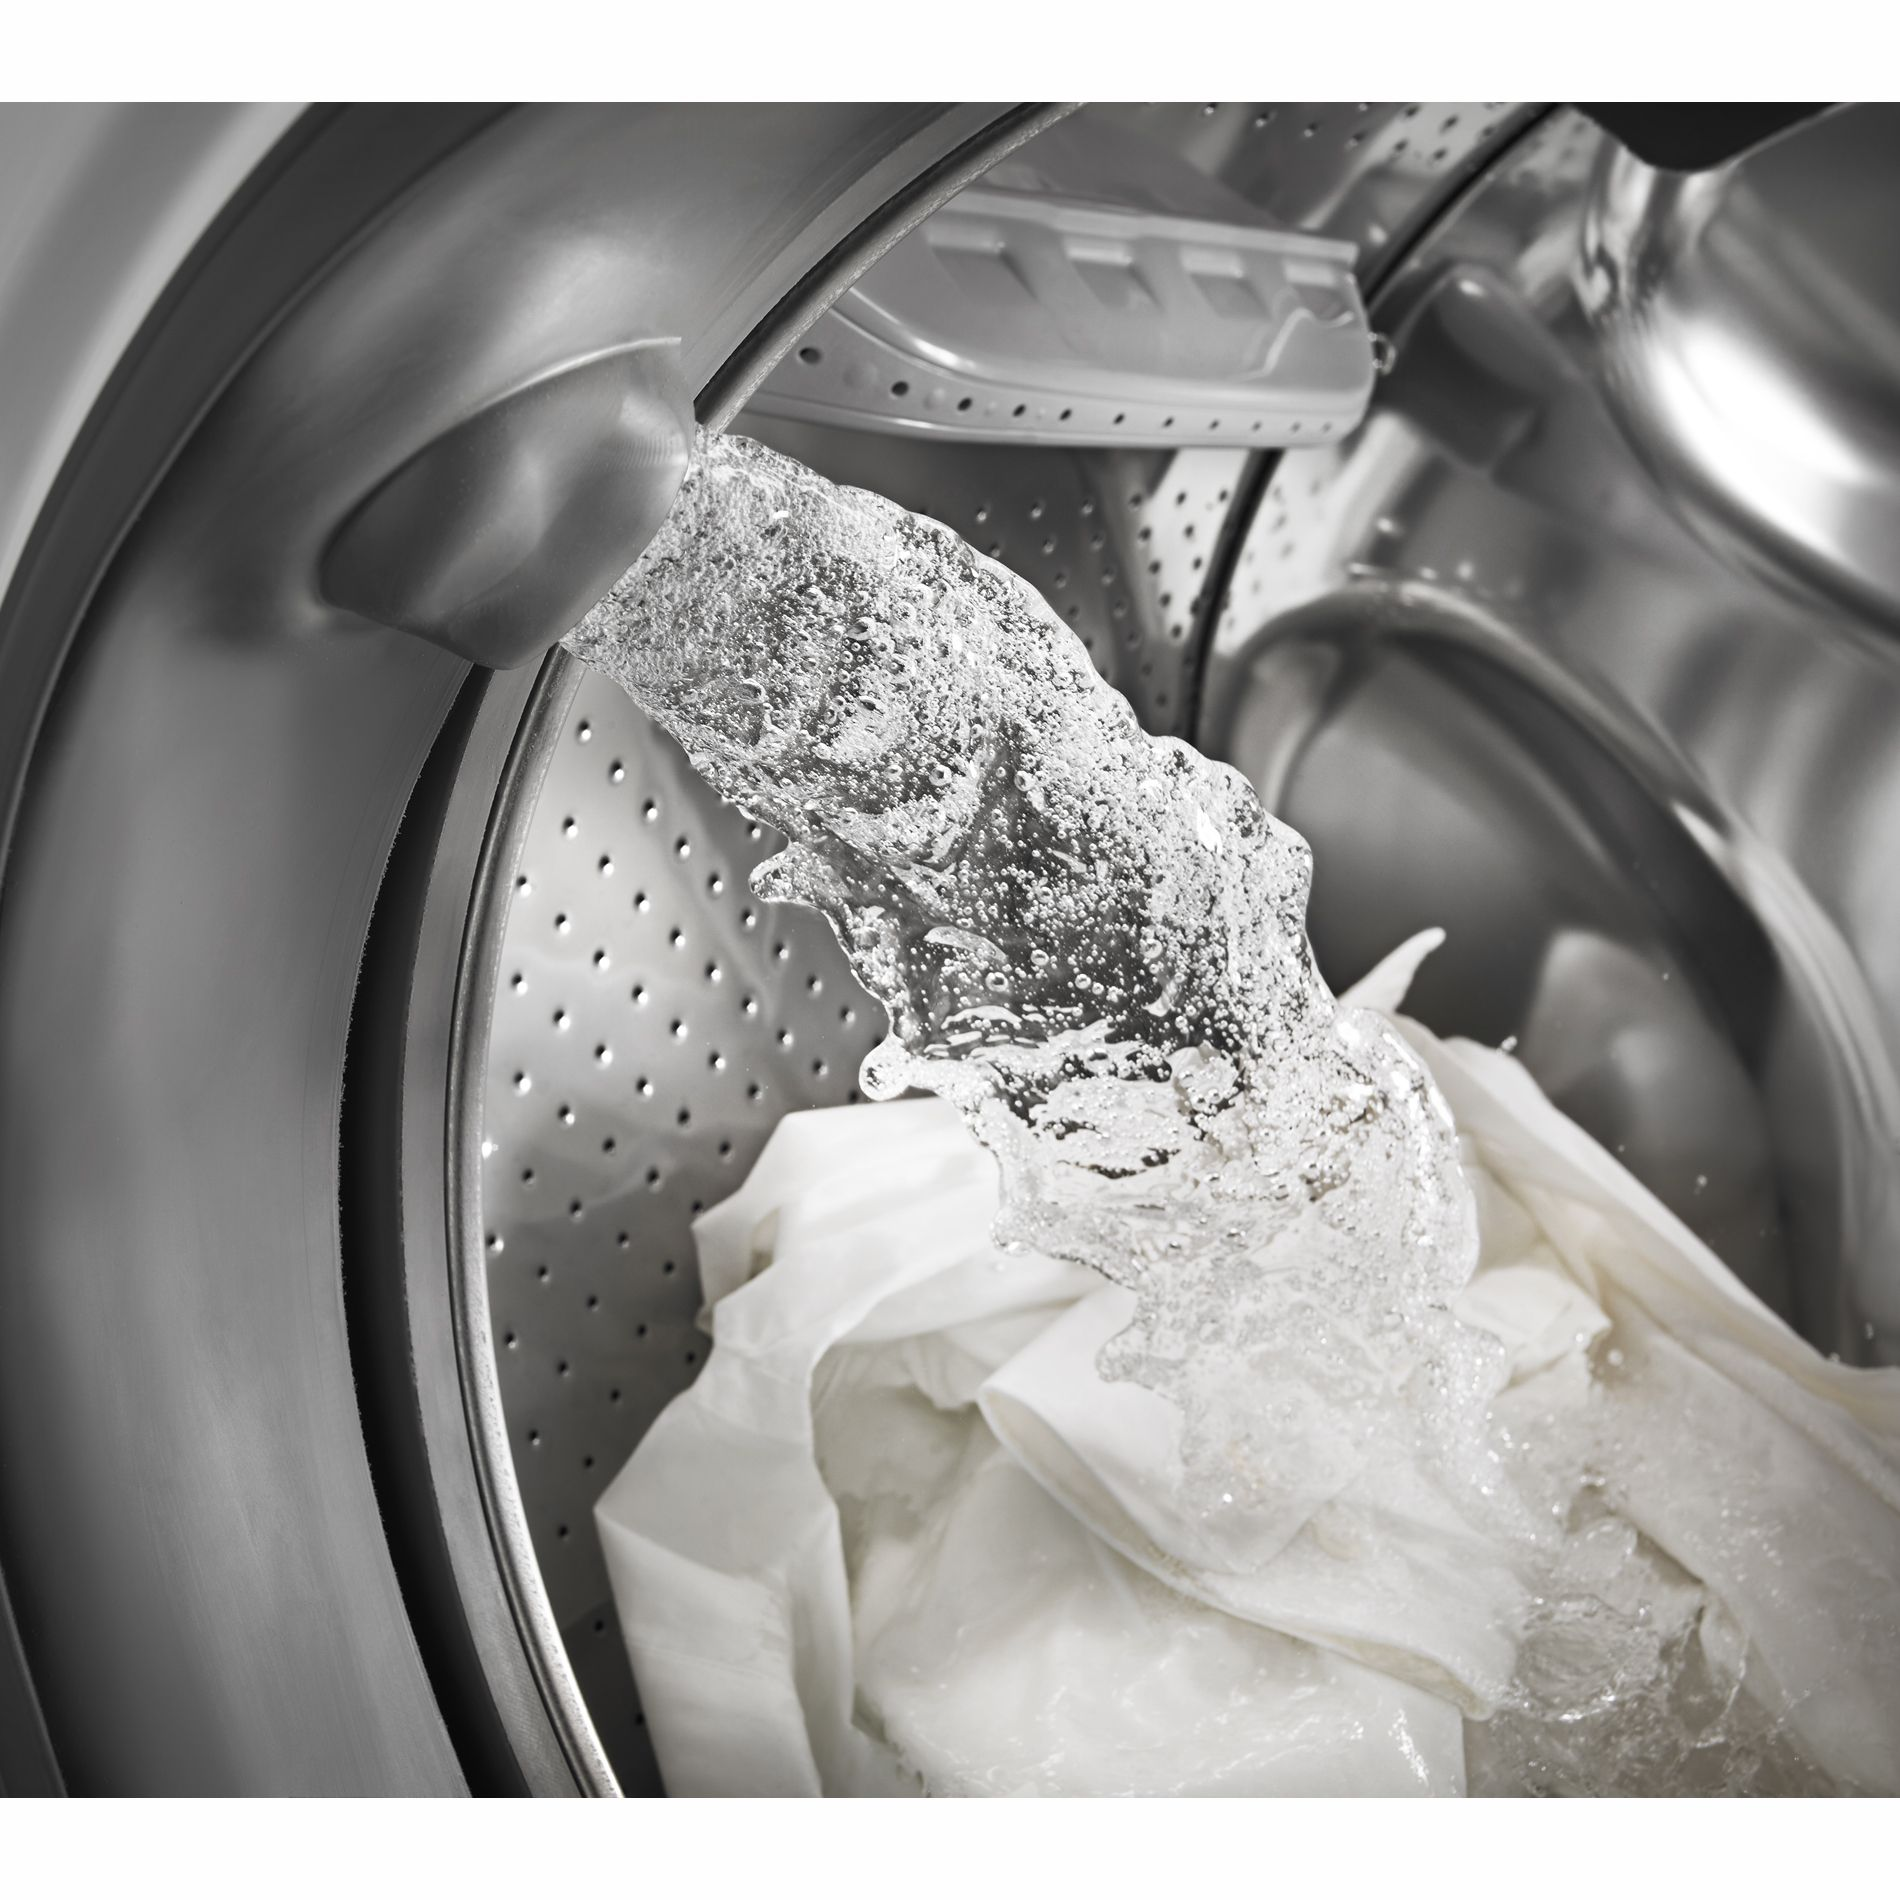 Whirlpool Duet® Premium 4.3 cu. ft. Front-Load Washer